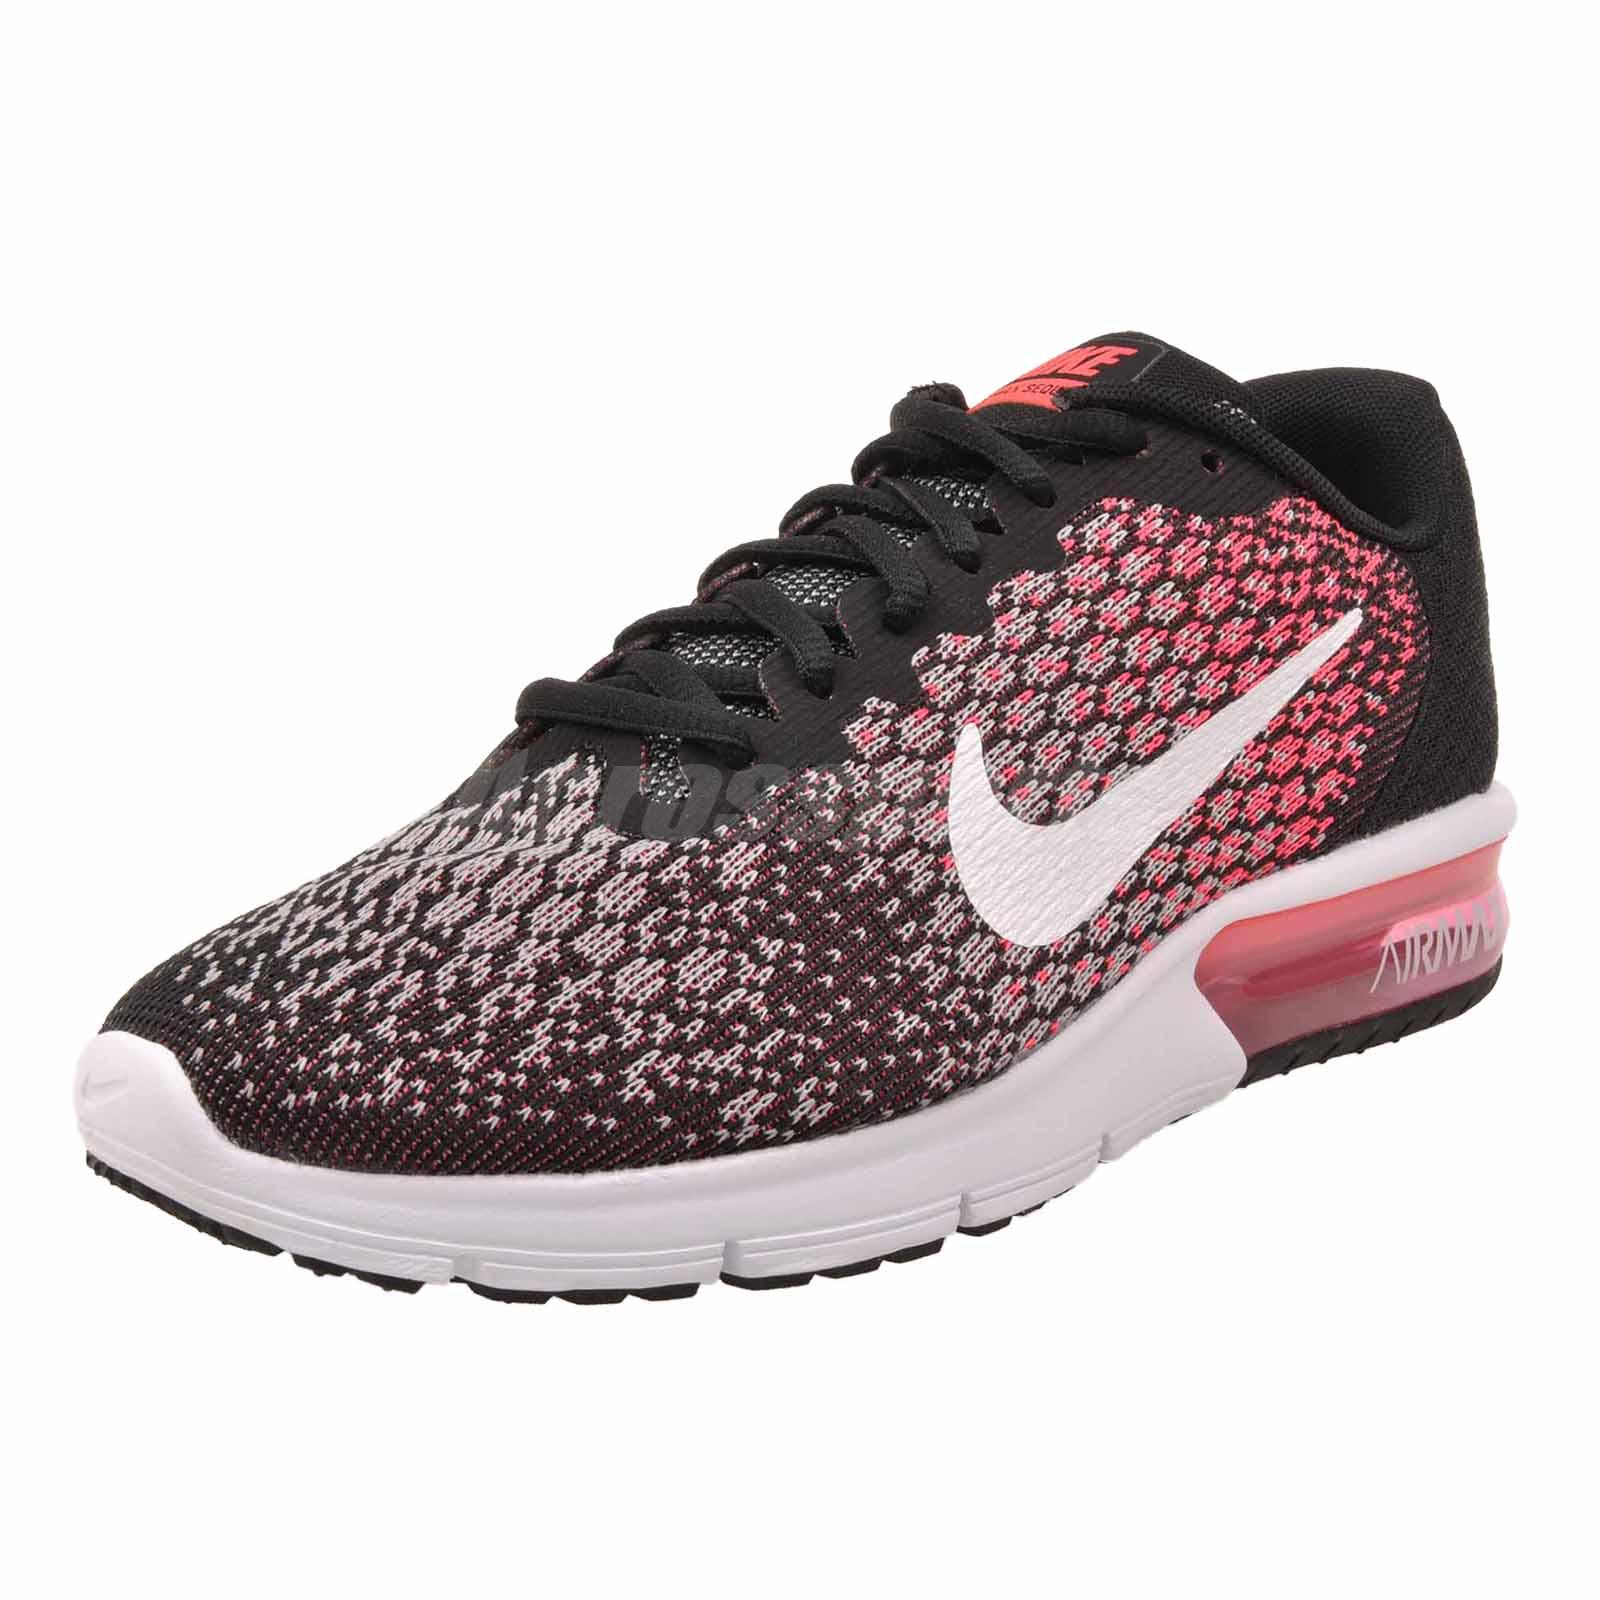 aa80ff4e47fd76 Nike Wmns Air Max Sequent 2 Running Womens Shoes Black Pink 852465 ...